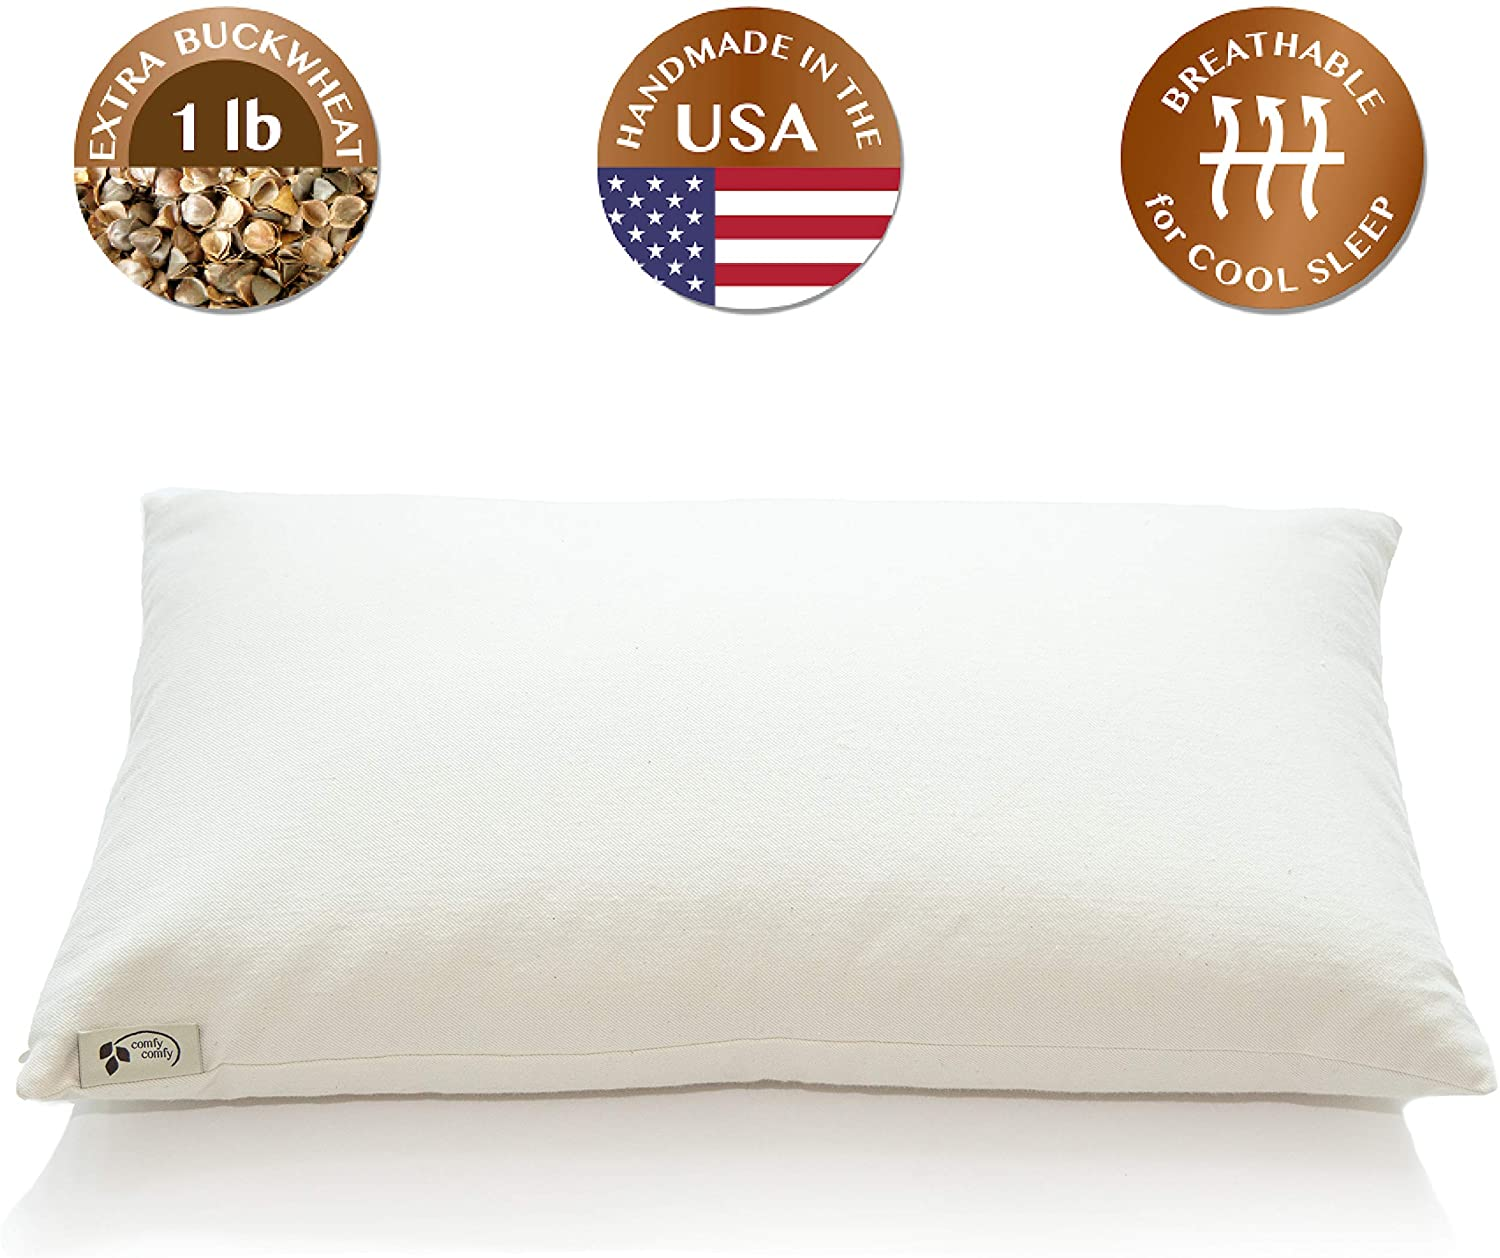 """ComfyComfy Premium Buckwheat Pillow, Classic Size (14"""" x 23""""), Comes with Extra 1 lb of USA Grown Buckwheat Hulls to Customize for Comfort, Made from Durable Organic Cotton Twill"""